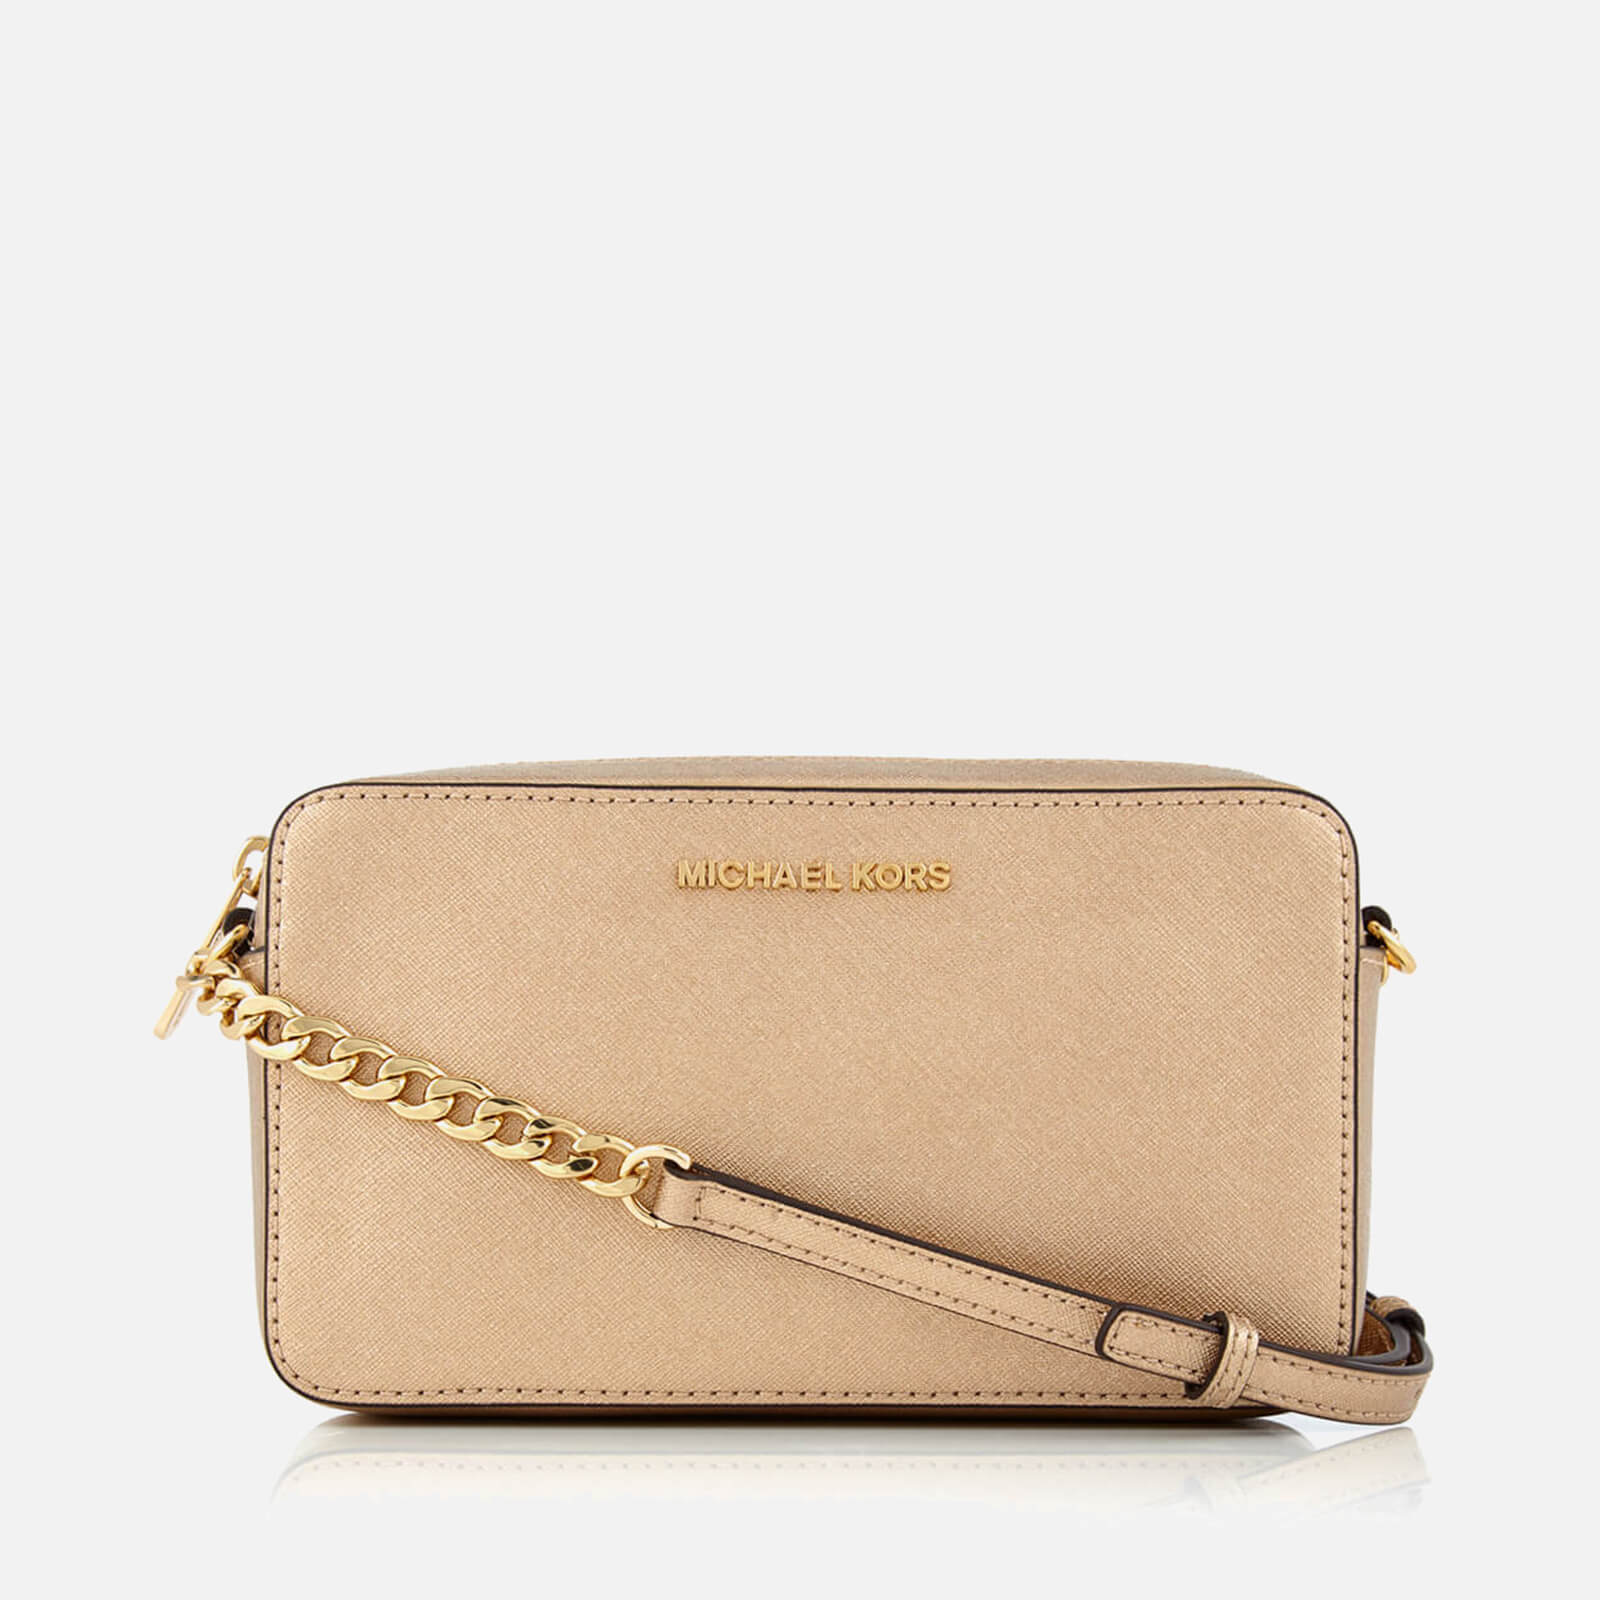 a83f526e0e96 MICHAEL MICHAEL KORS Women's Jet Set Travel Medium East West Cross Body Bag  - Pale Gold Womens Accessories | TheHut.com